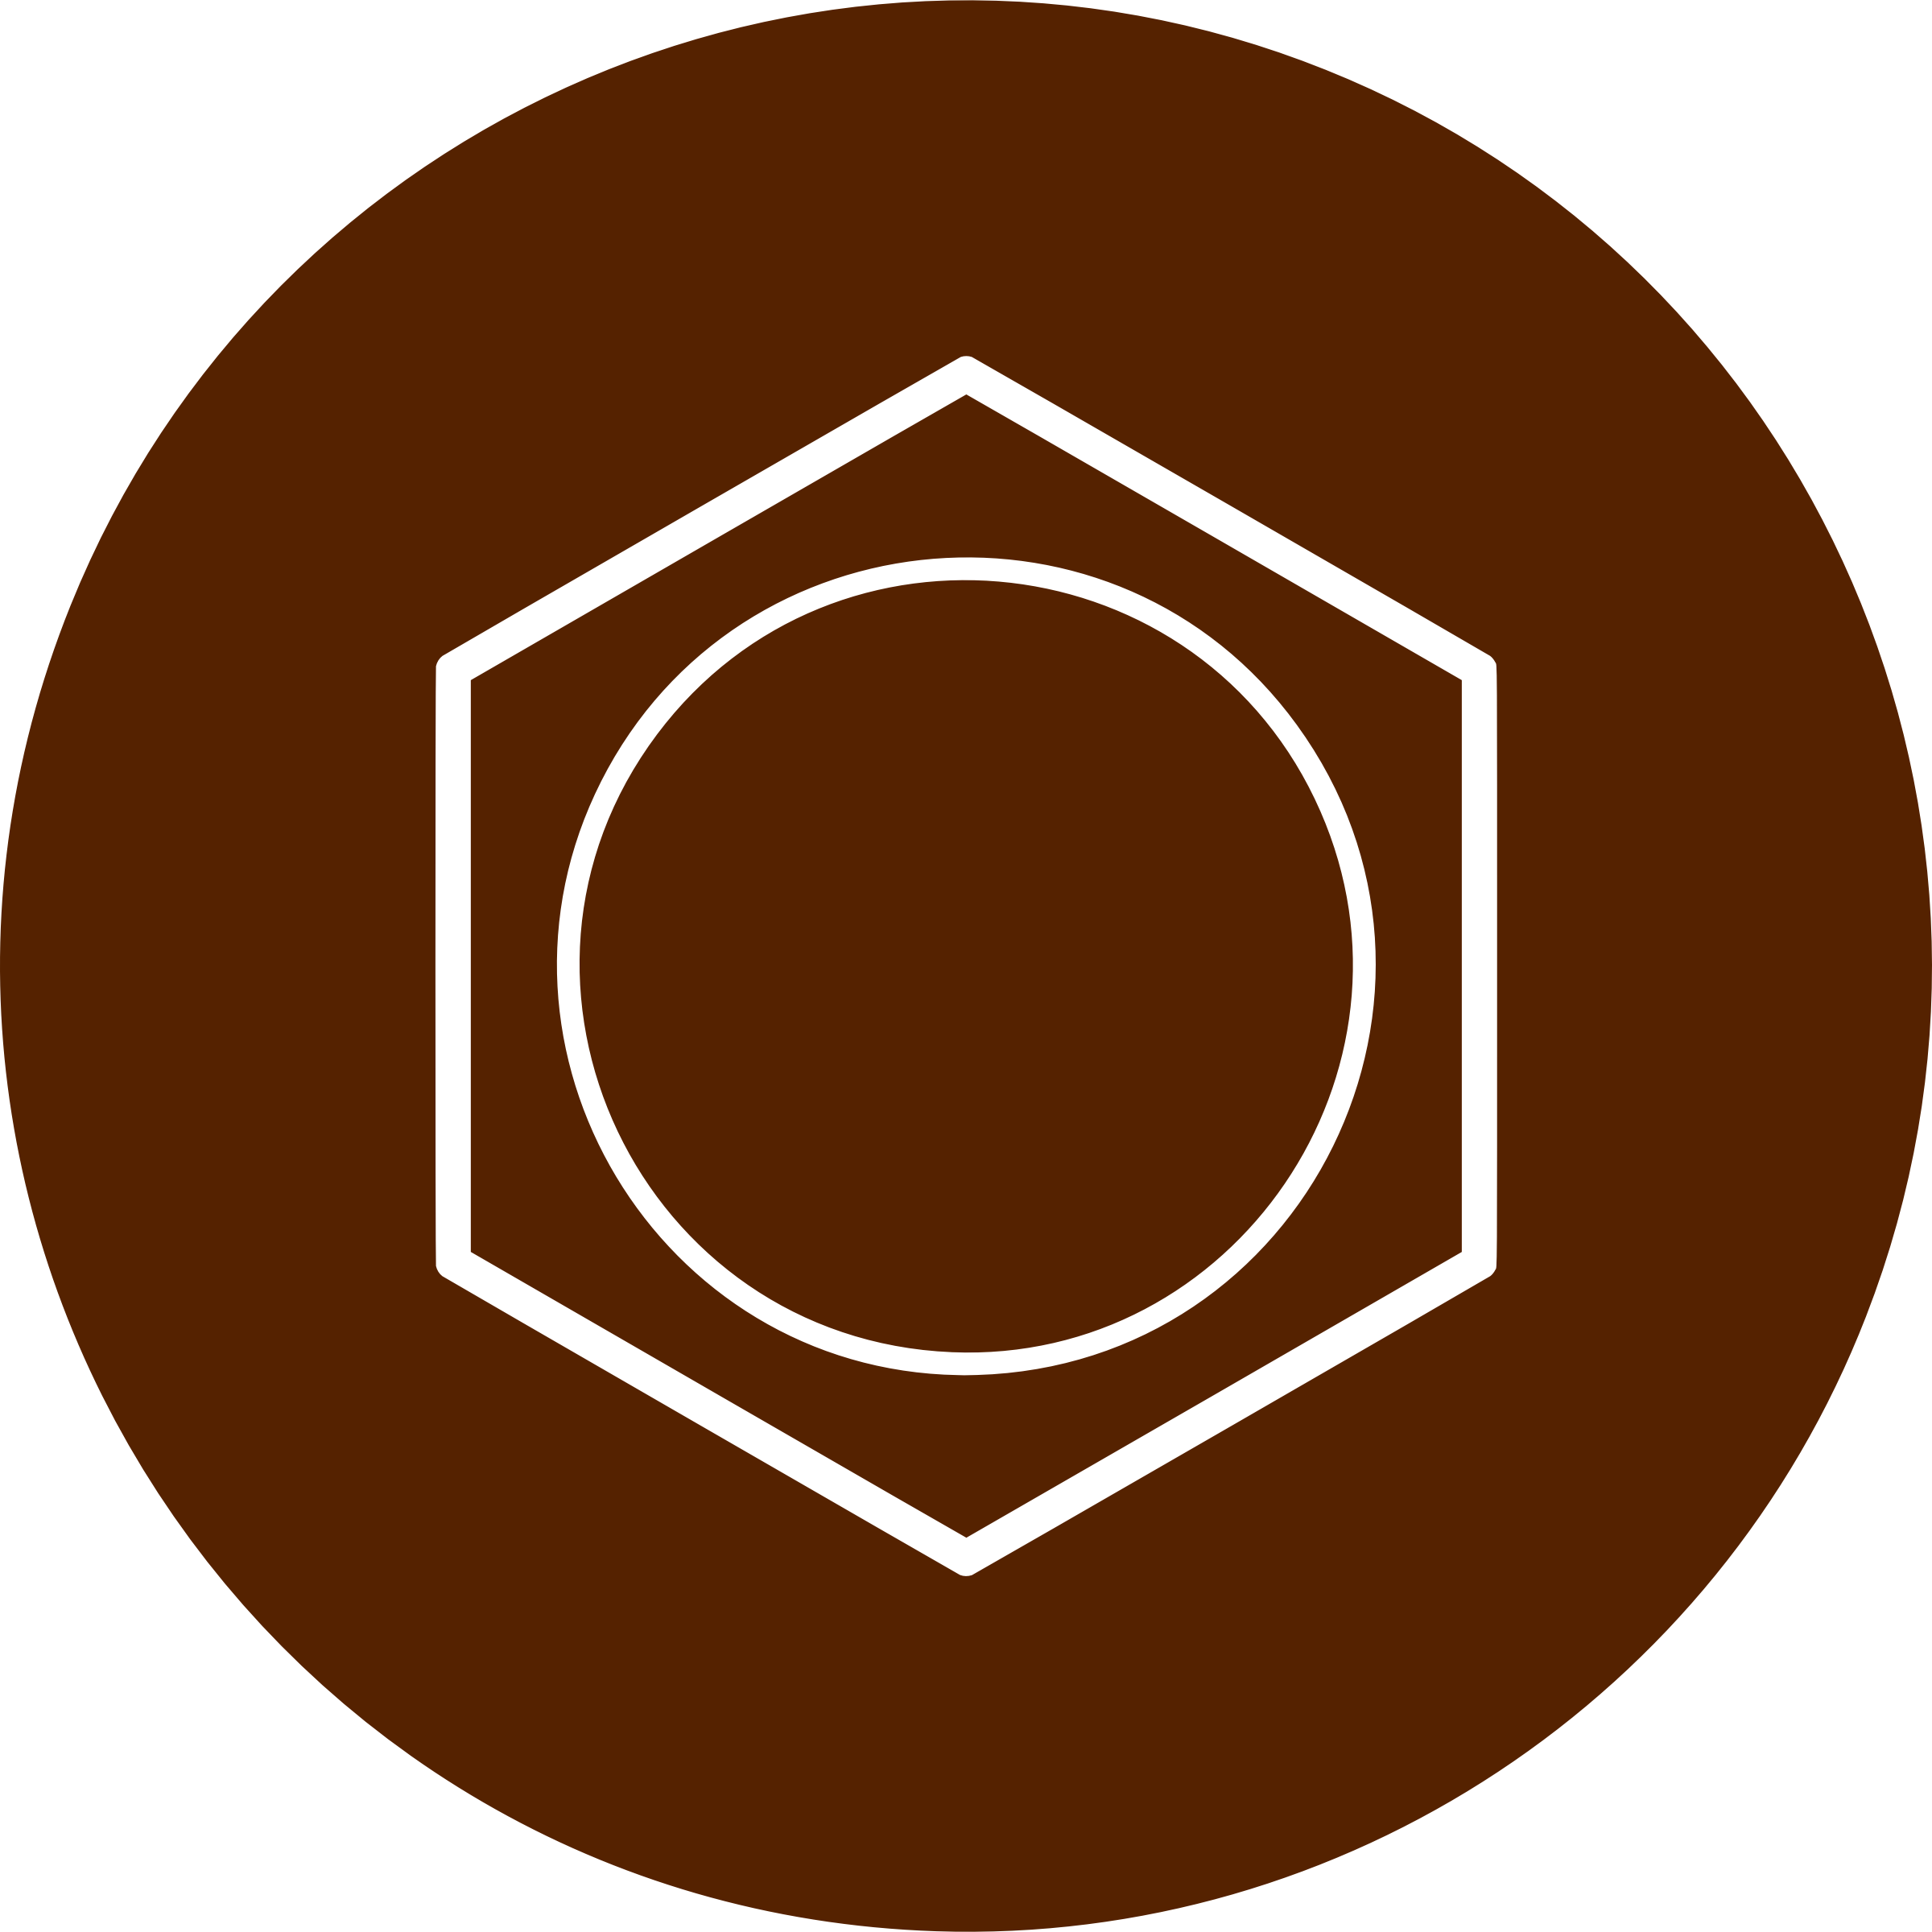 Benzene 3 vectorized by Firkin